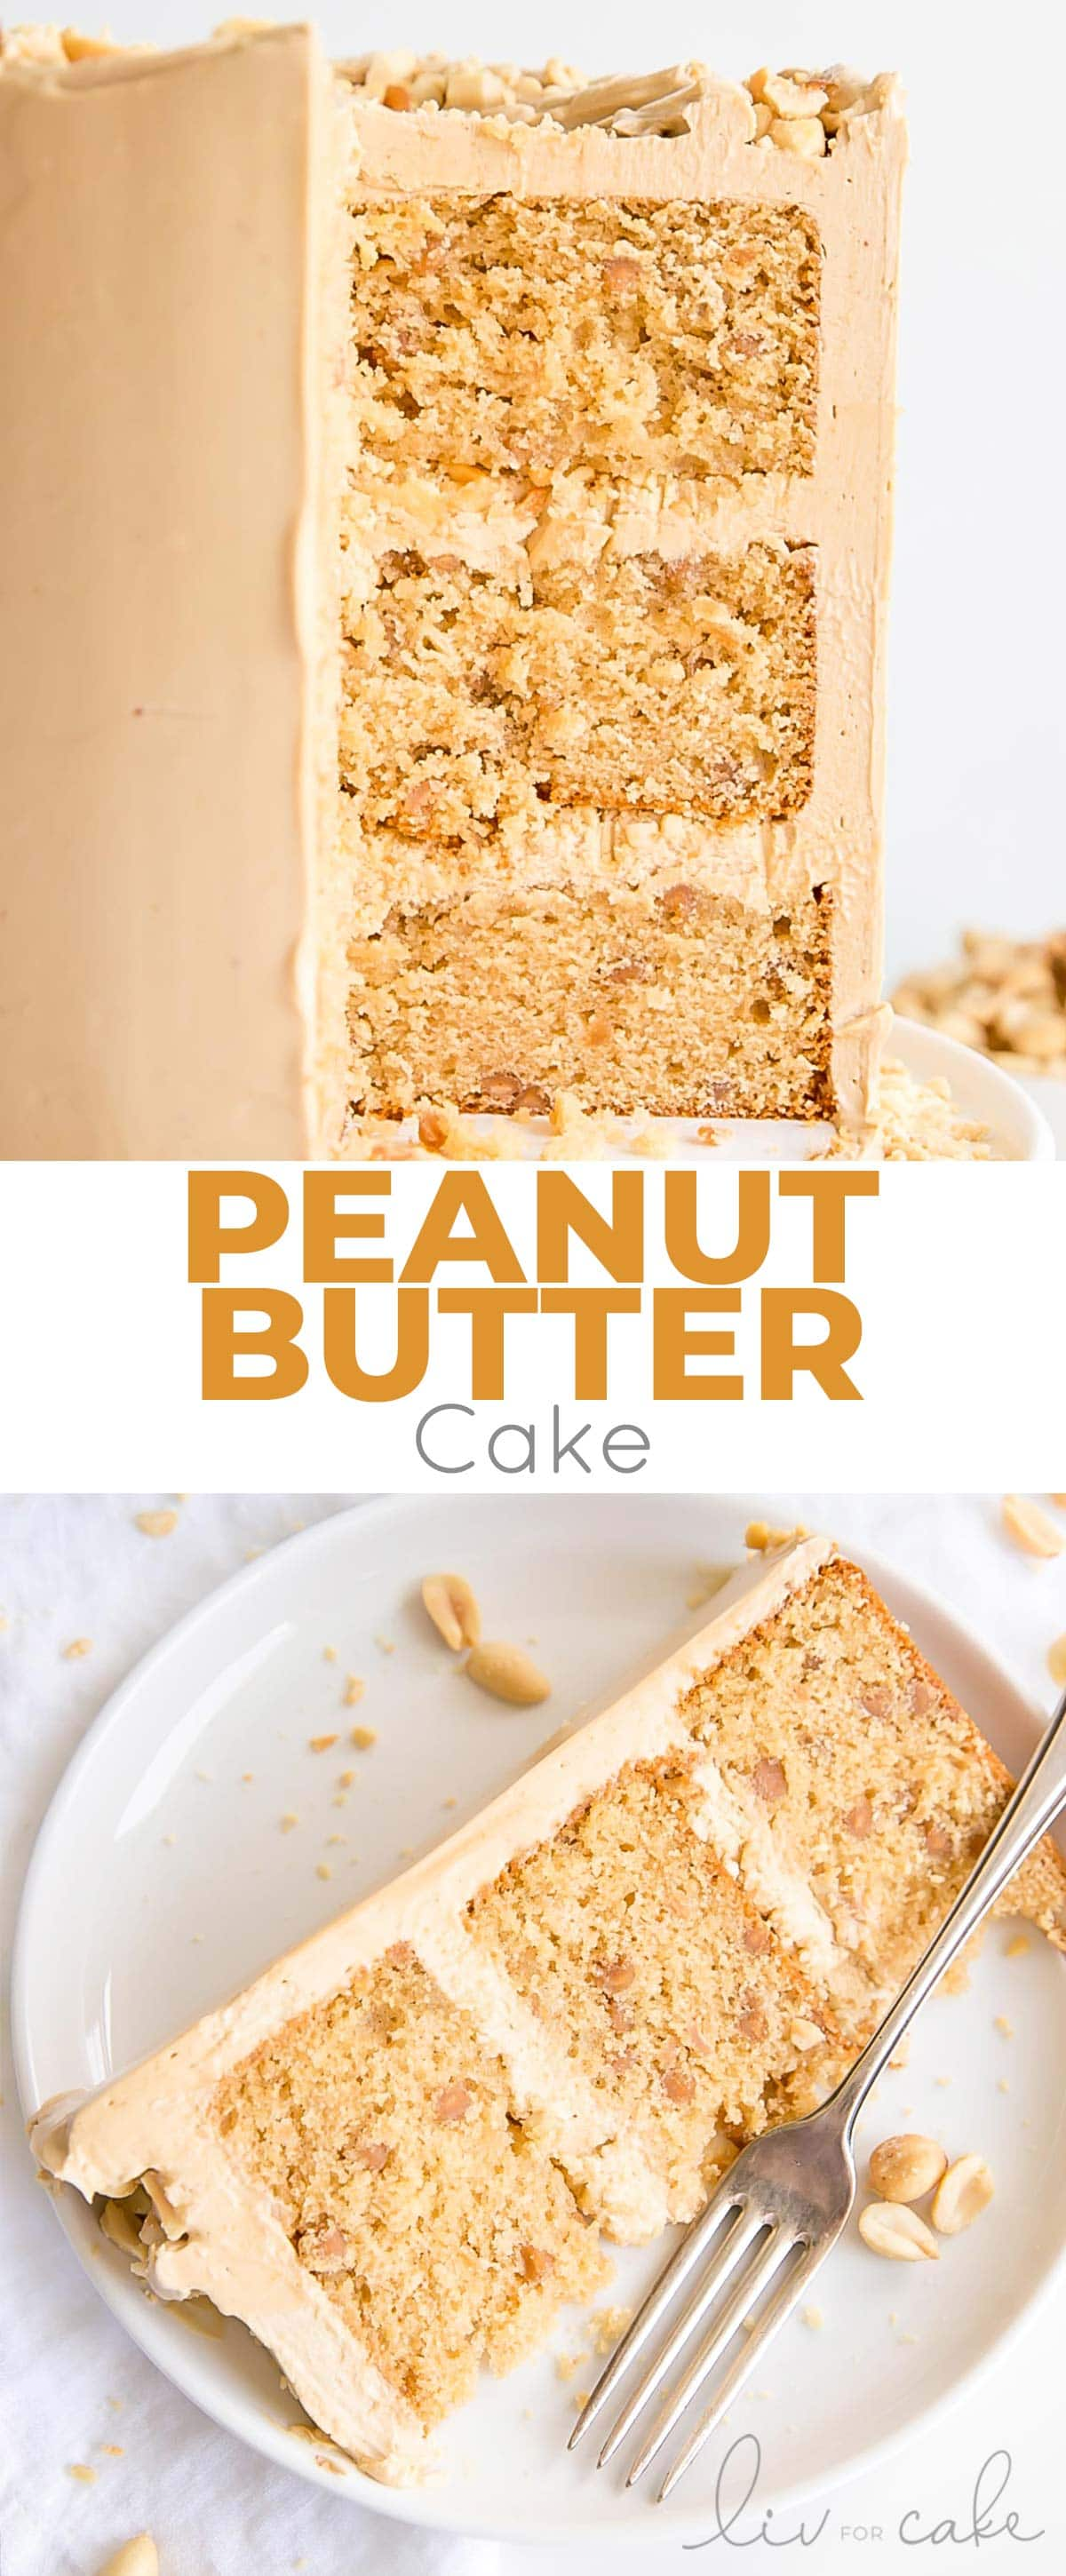 Peanut butter cake collage